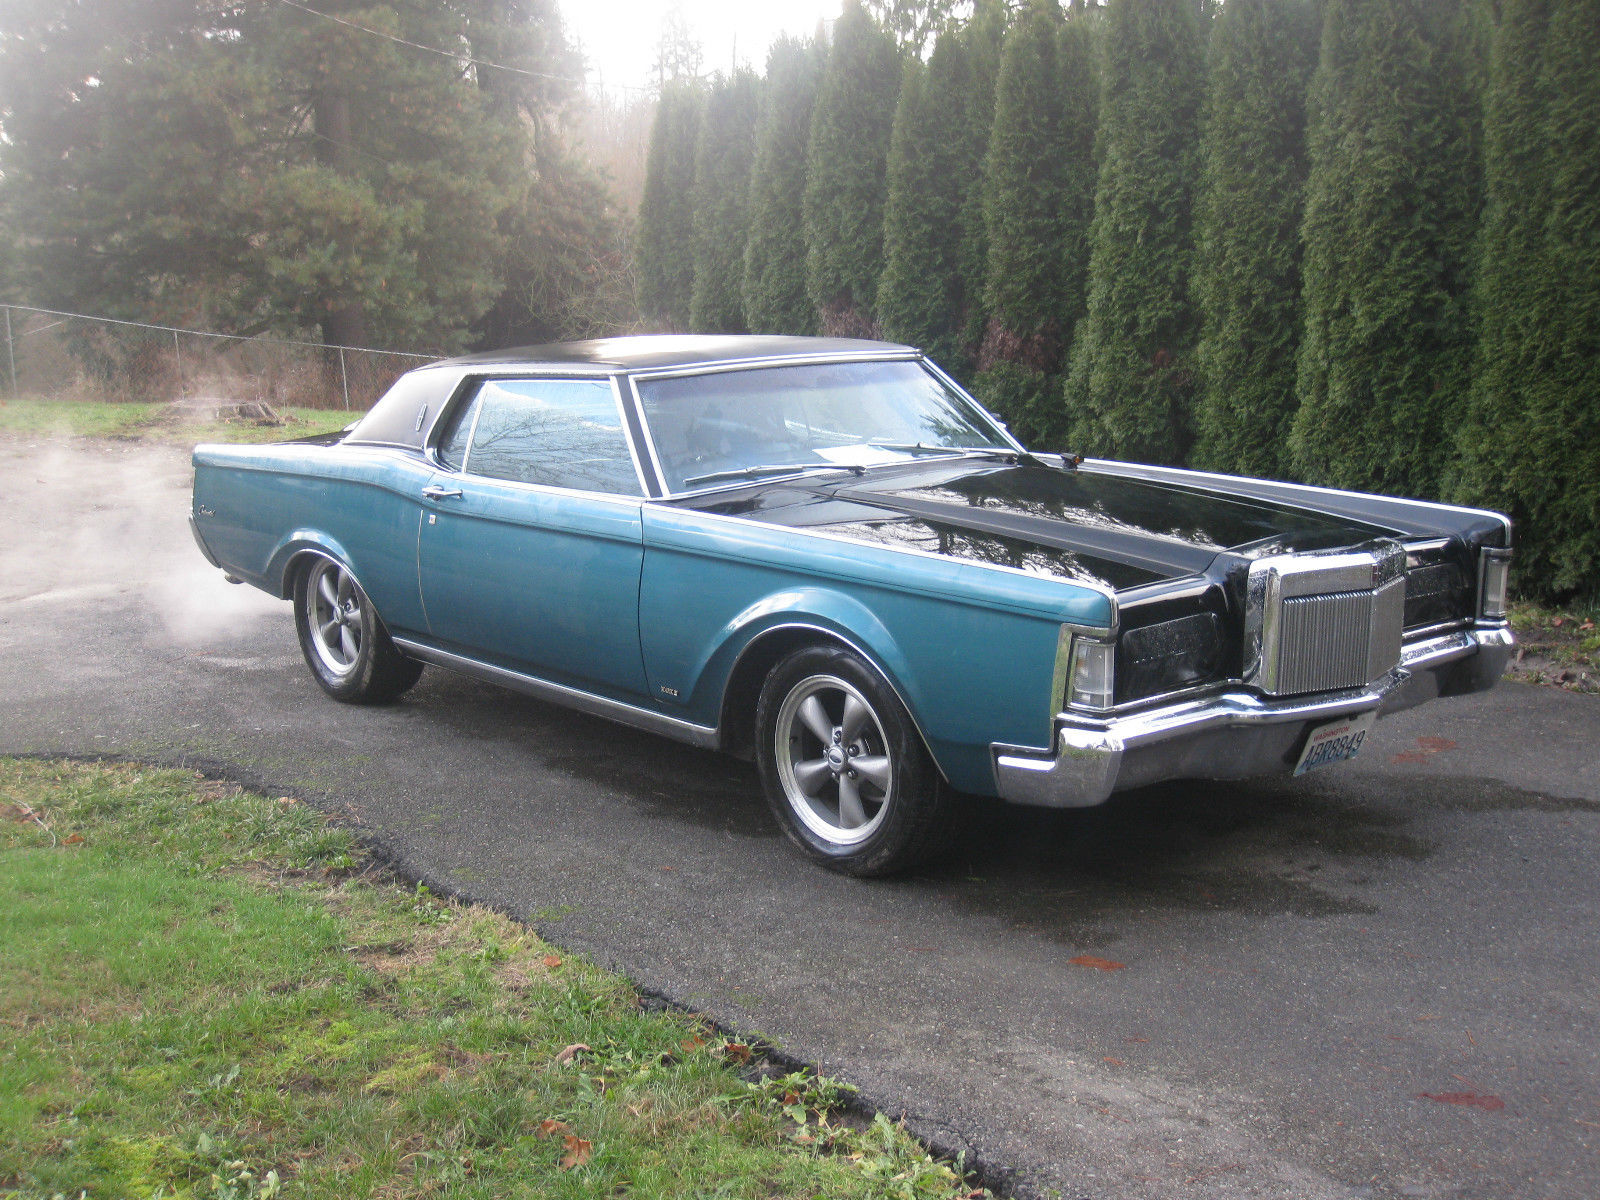 69 lincoln continental mark iii rebuilt motor and trans for sale in lynnwood washington united. Black Bedroom Furniture Sets. Home Design Ideas